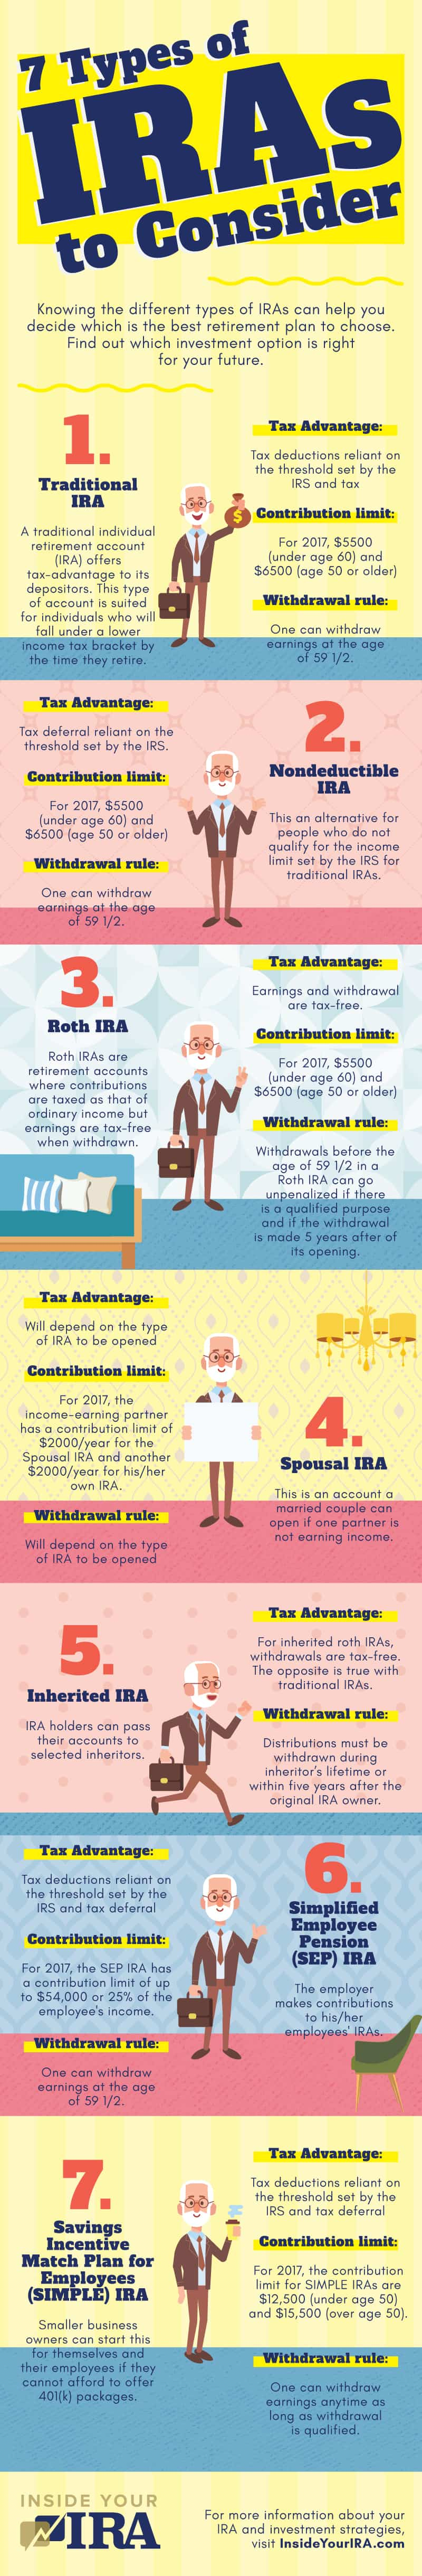 7 Types Of IRAs | A Savings Comparison Inside Your IRA